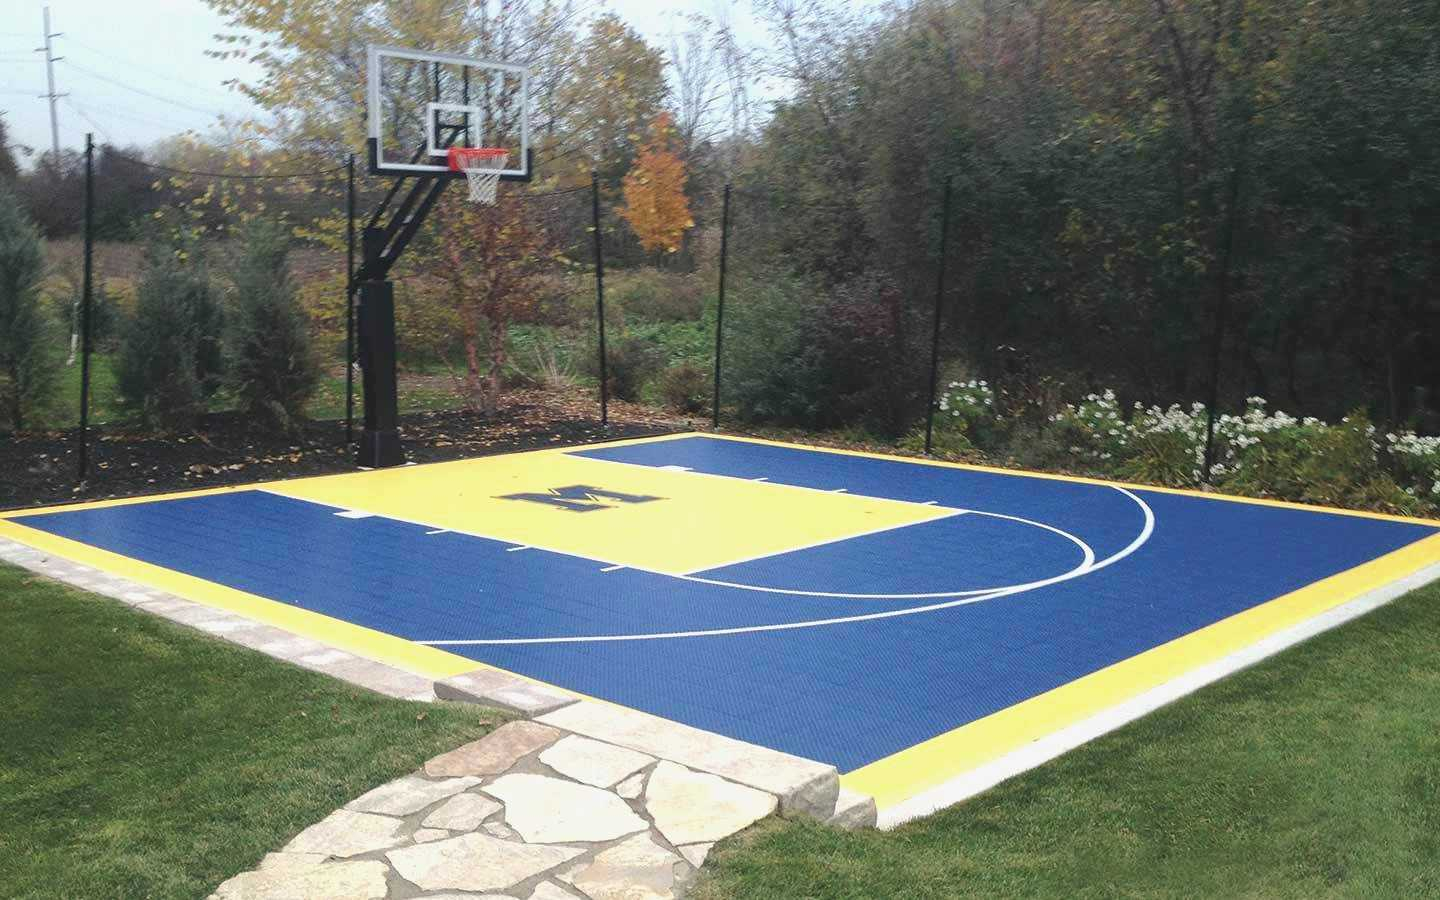 13.backyard basketball court ideas outdoor via SIMPHOME.COM